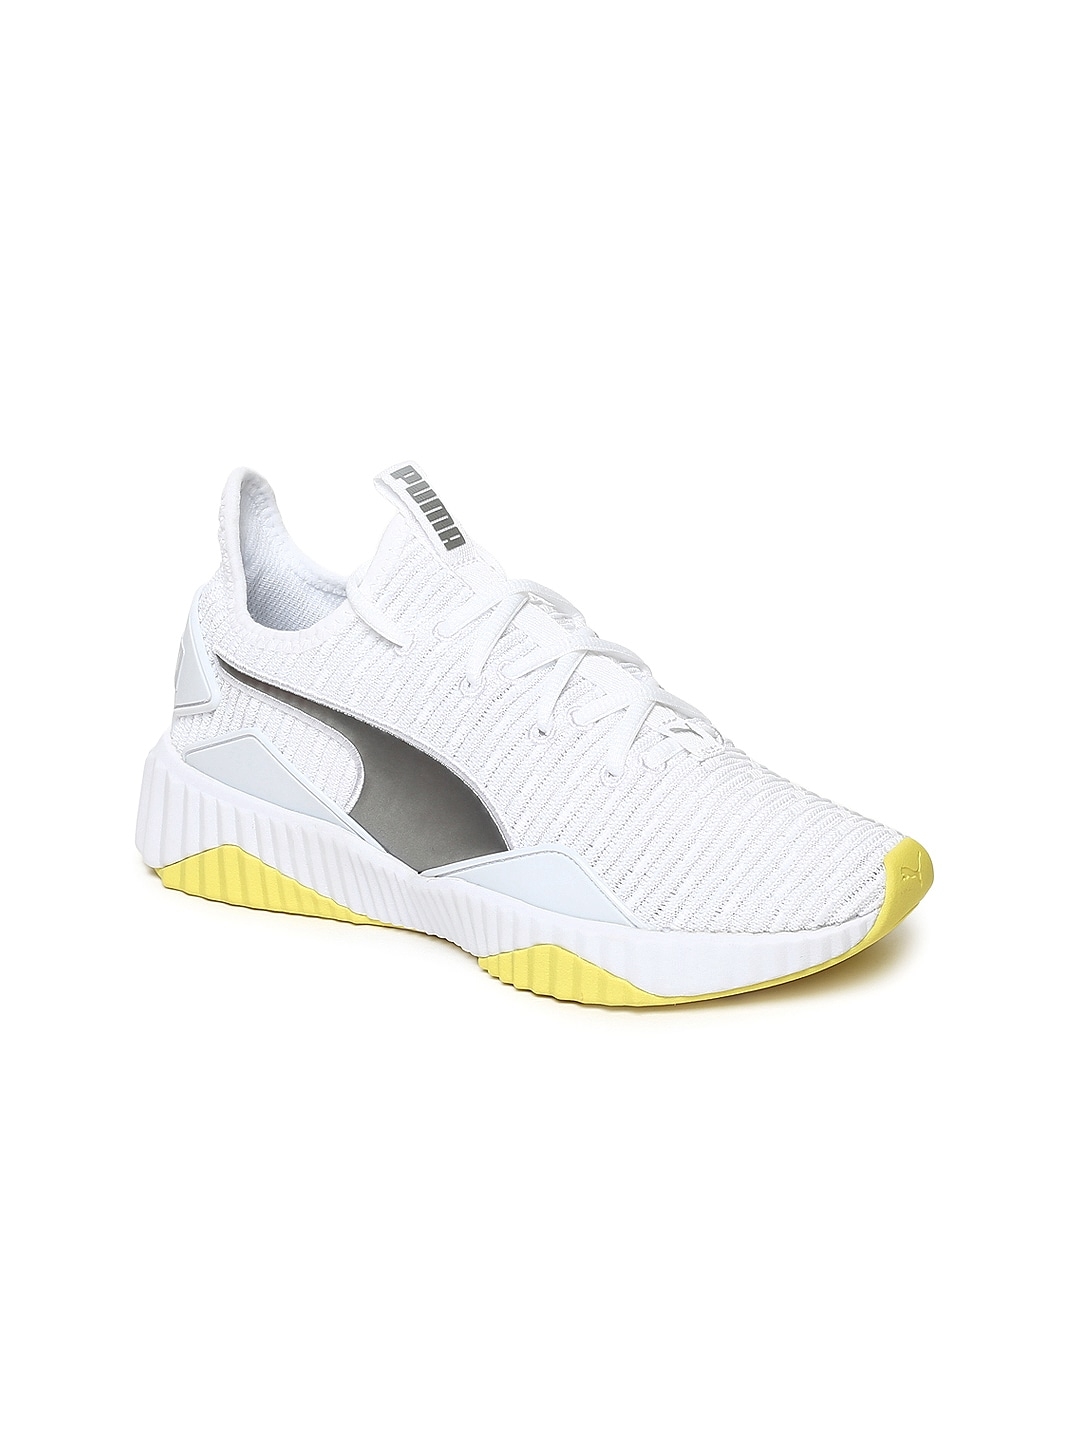 041587f6fa835 Puma Shoes - Buy Puma Shoes for Men   Women Online in India